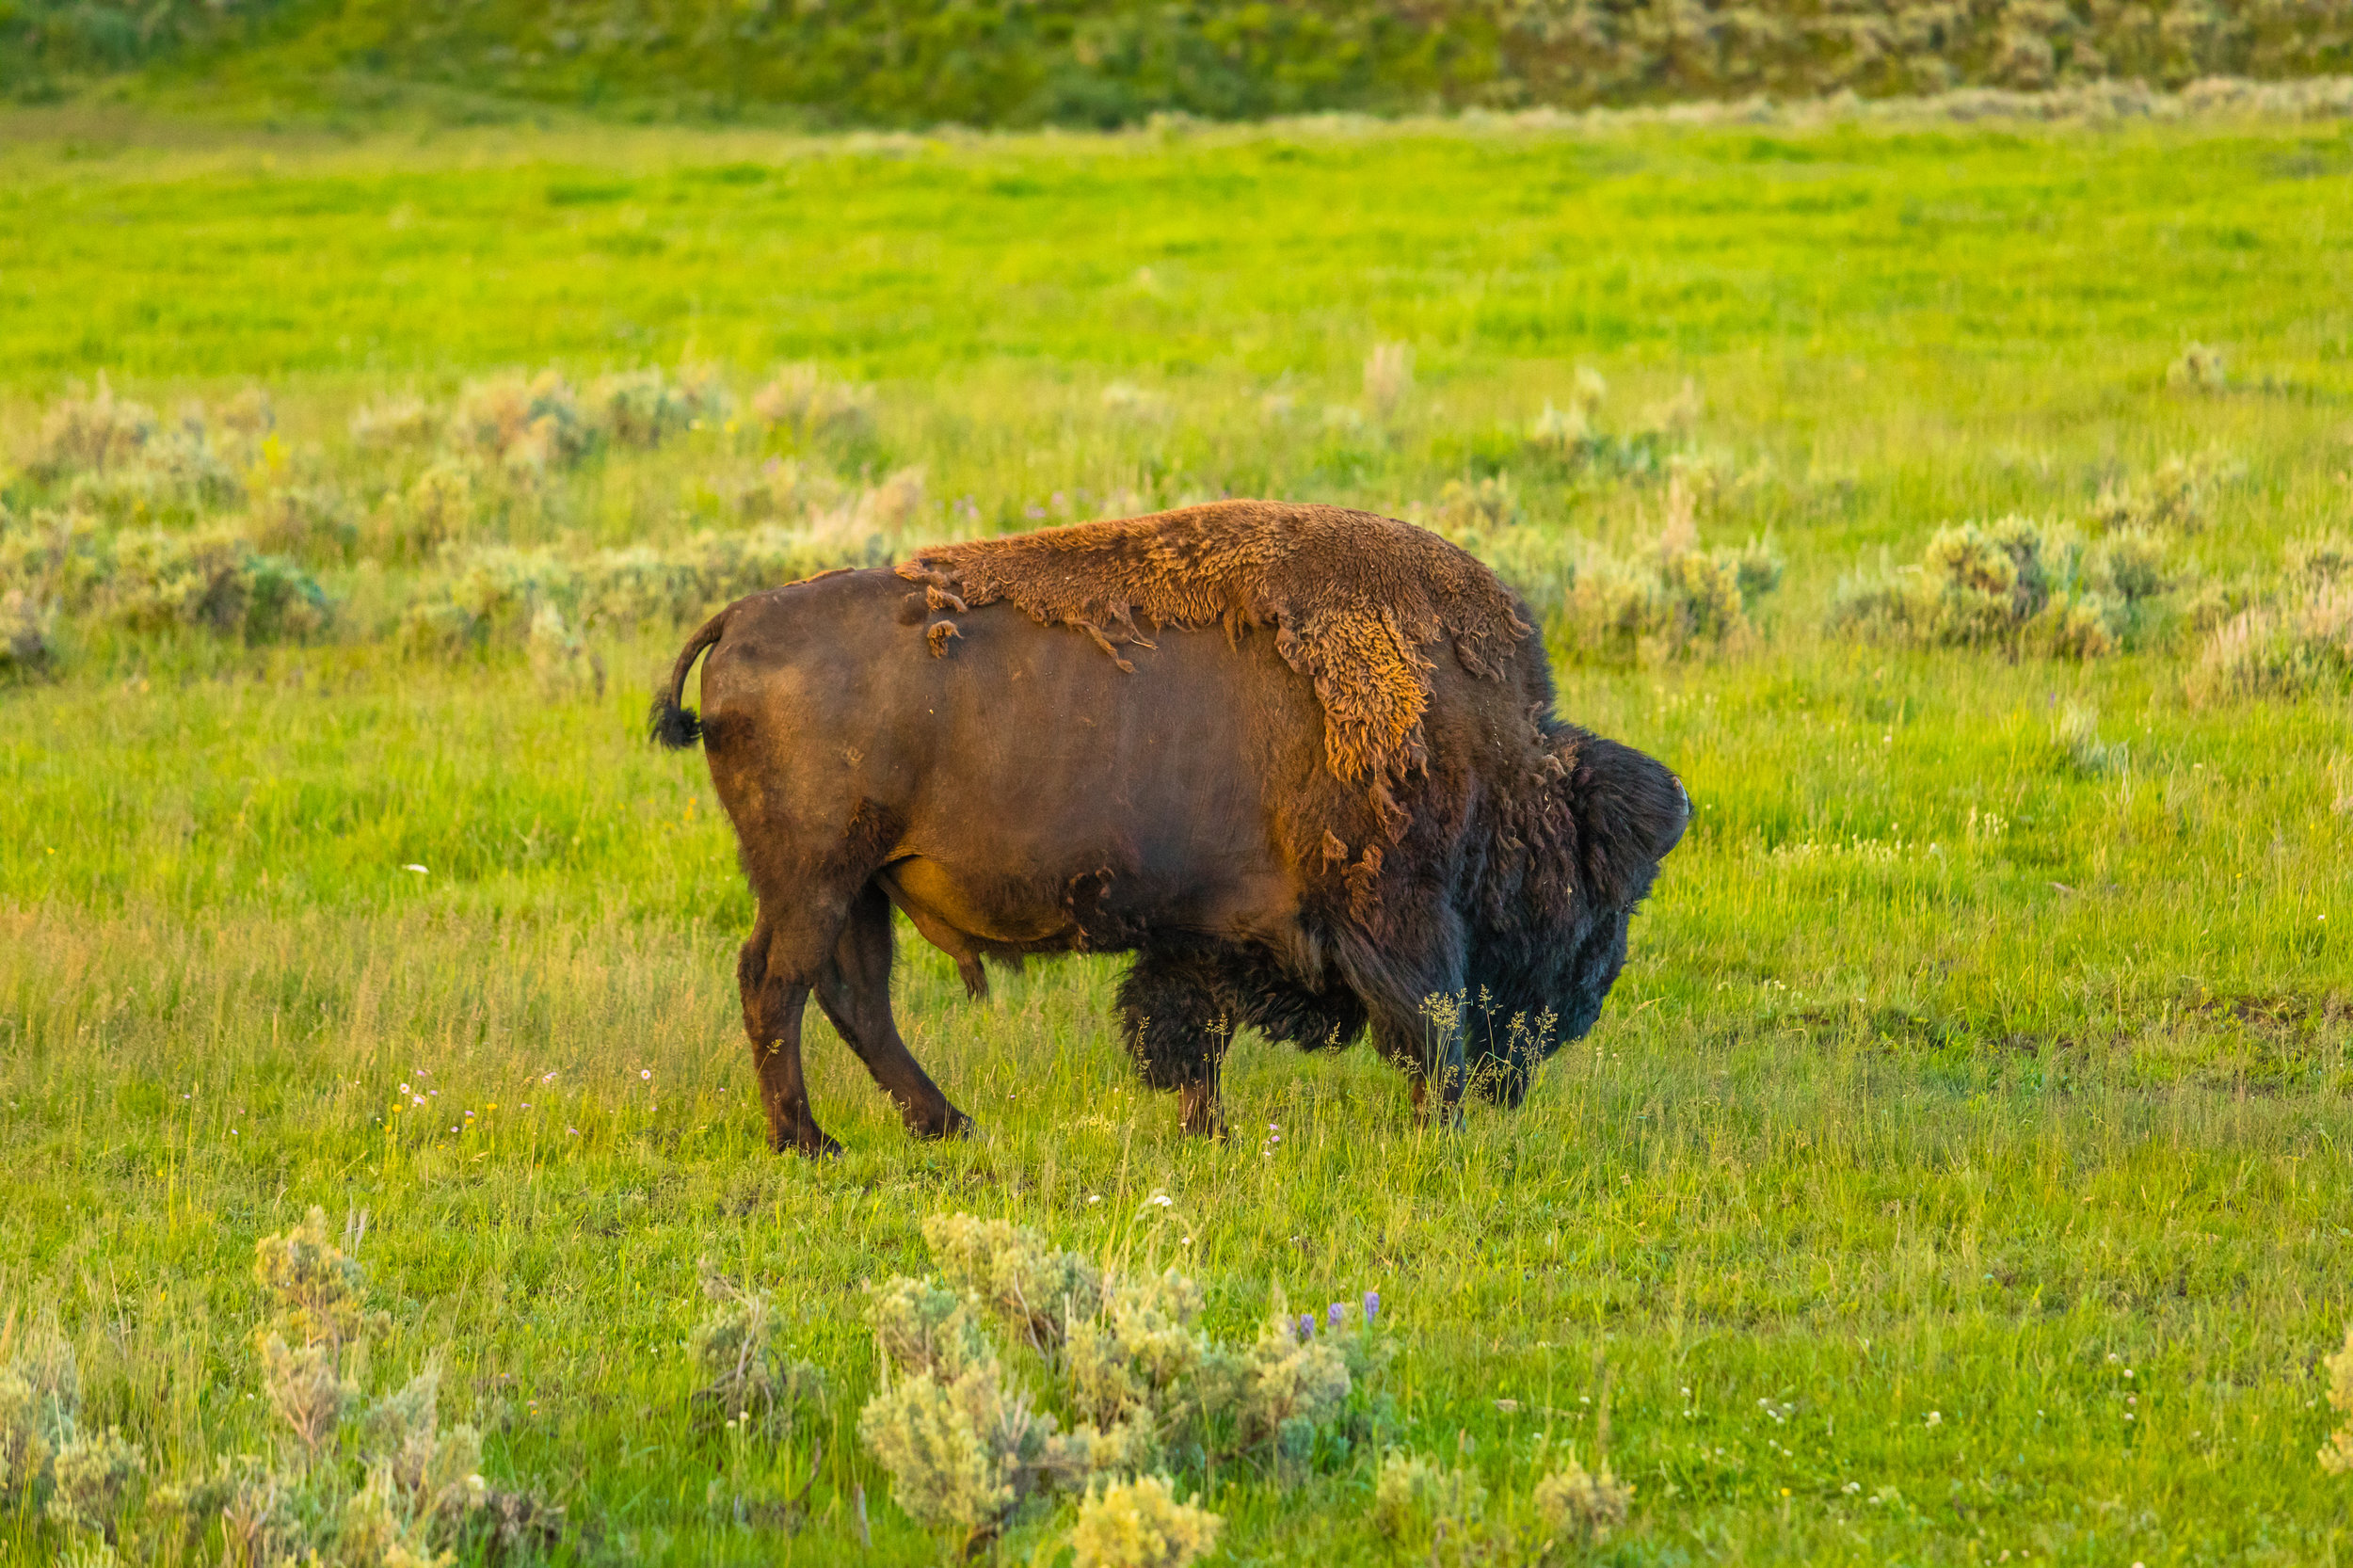 Lamar Valley, Yellowstone National Park, Image # 6042